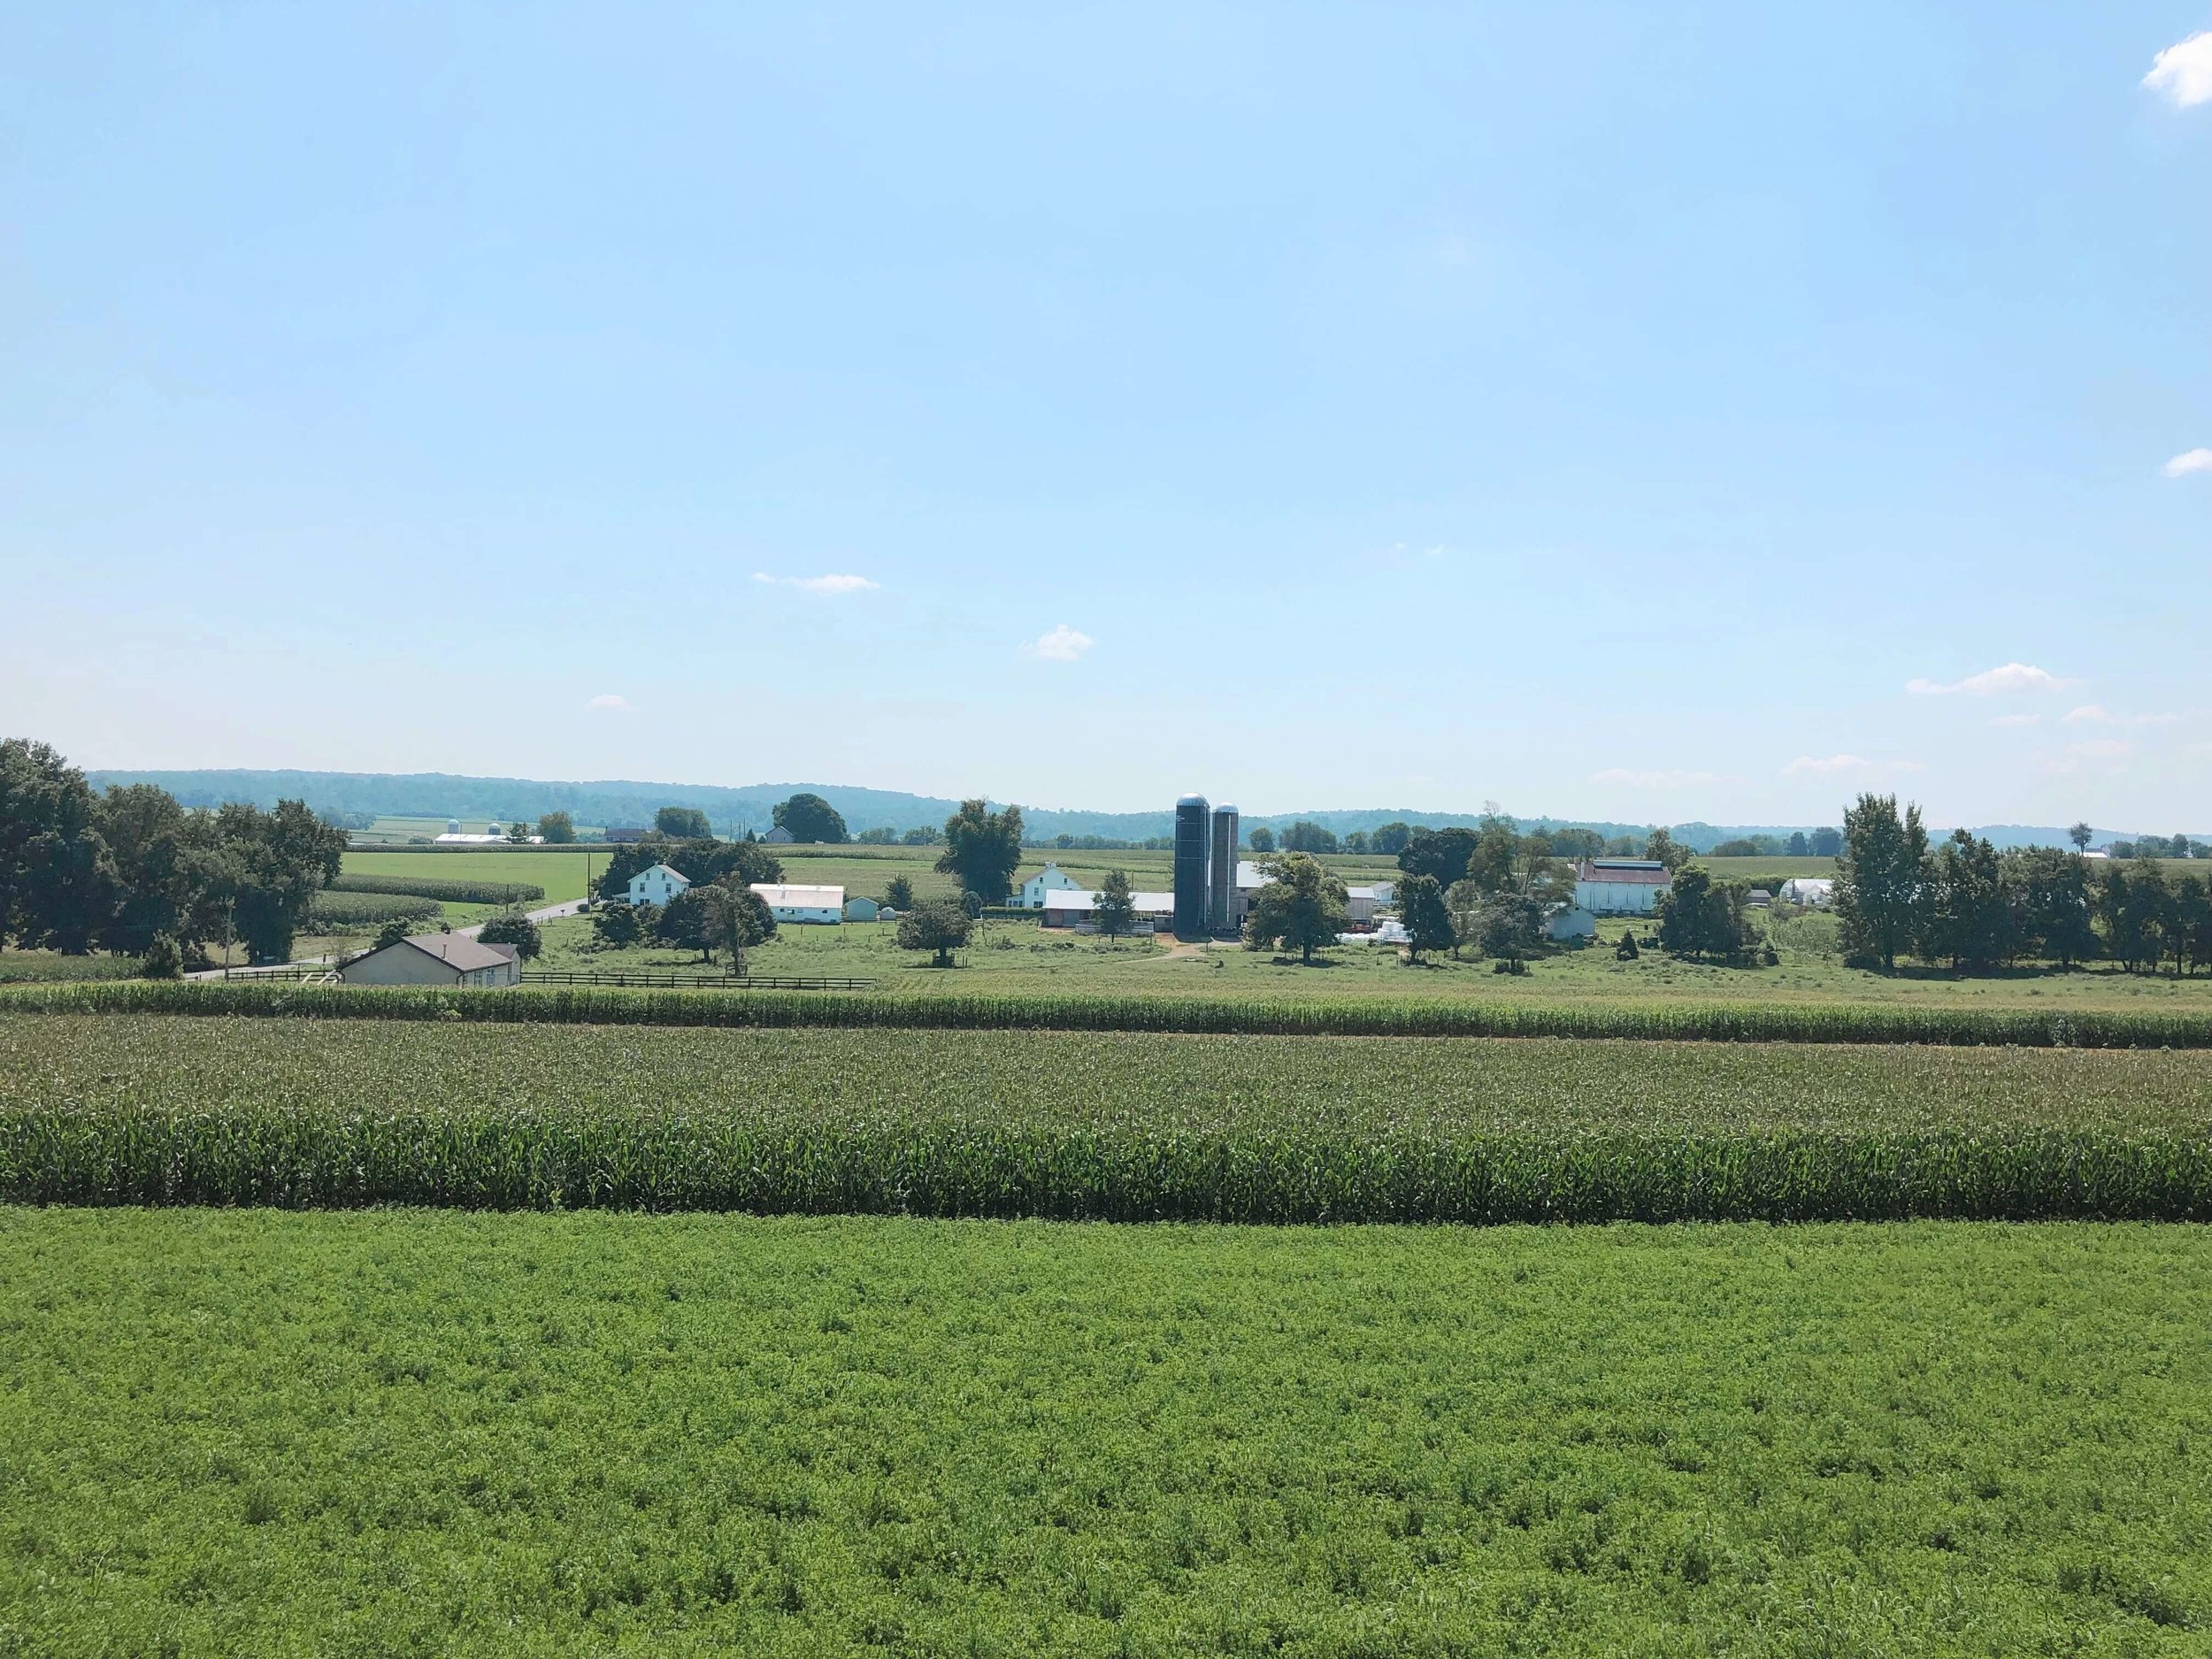 Views of the Lancaster County countryside from Strasburg Railroad